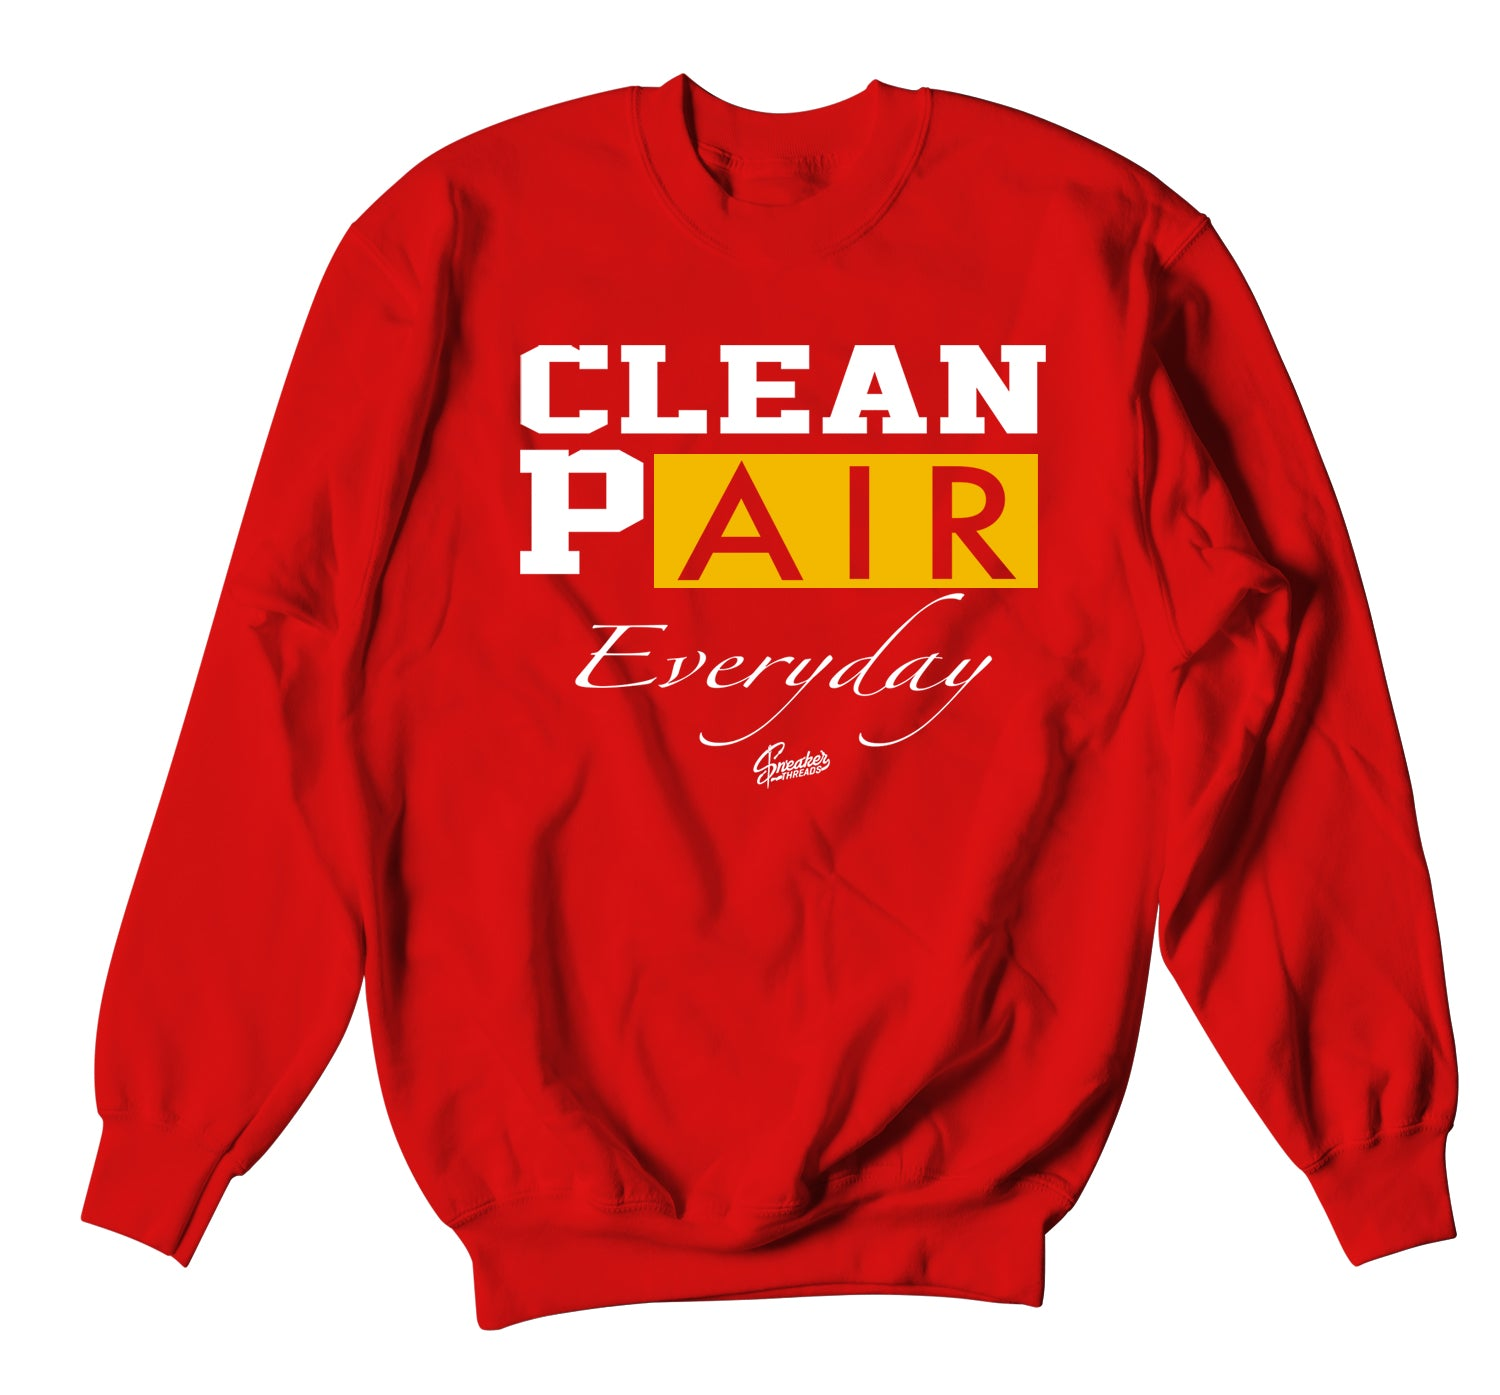 All Star 2020 Trophies Everyday Sweater